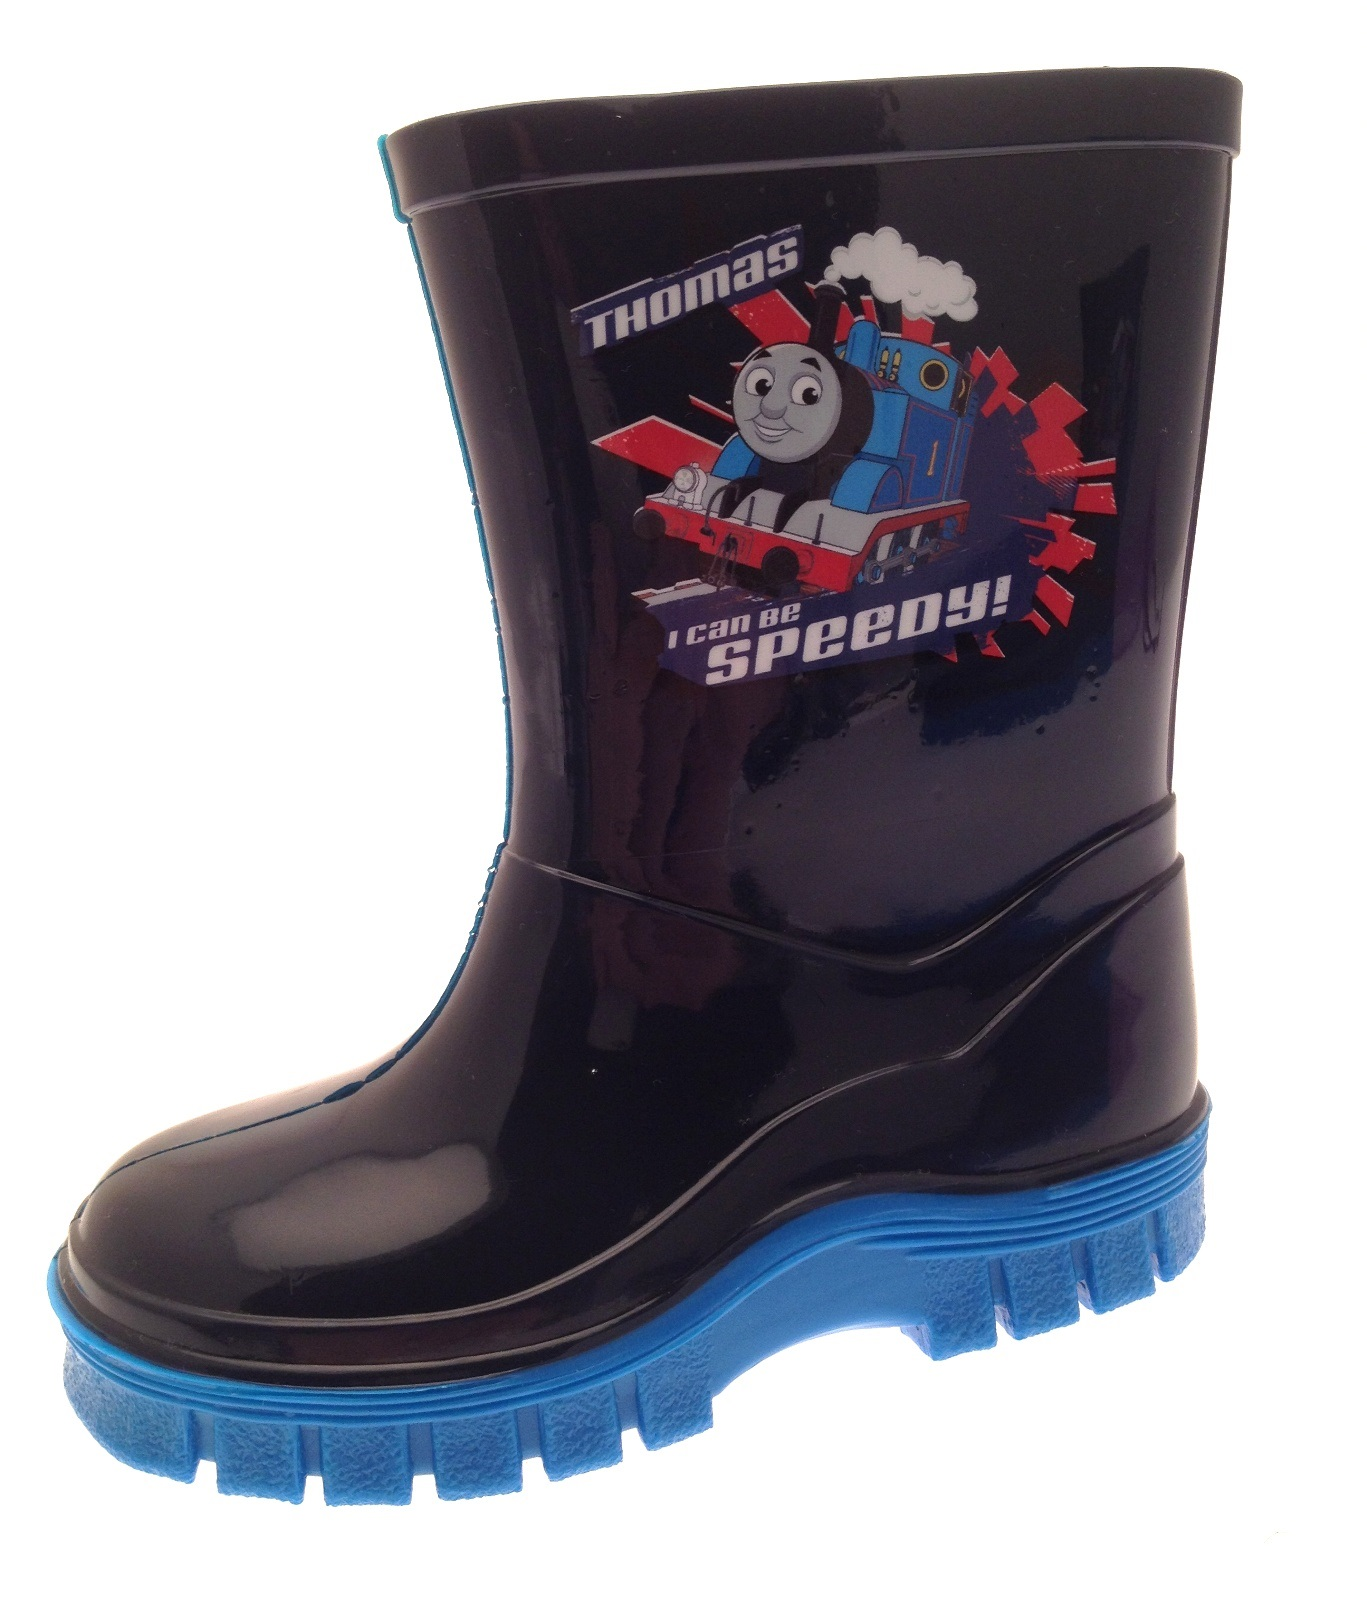 Thomas the Tank Engine Navy Blue Wellies UK 8 6mnOUwhjGd